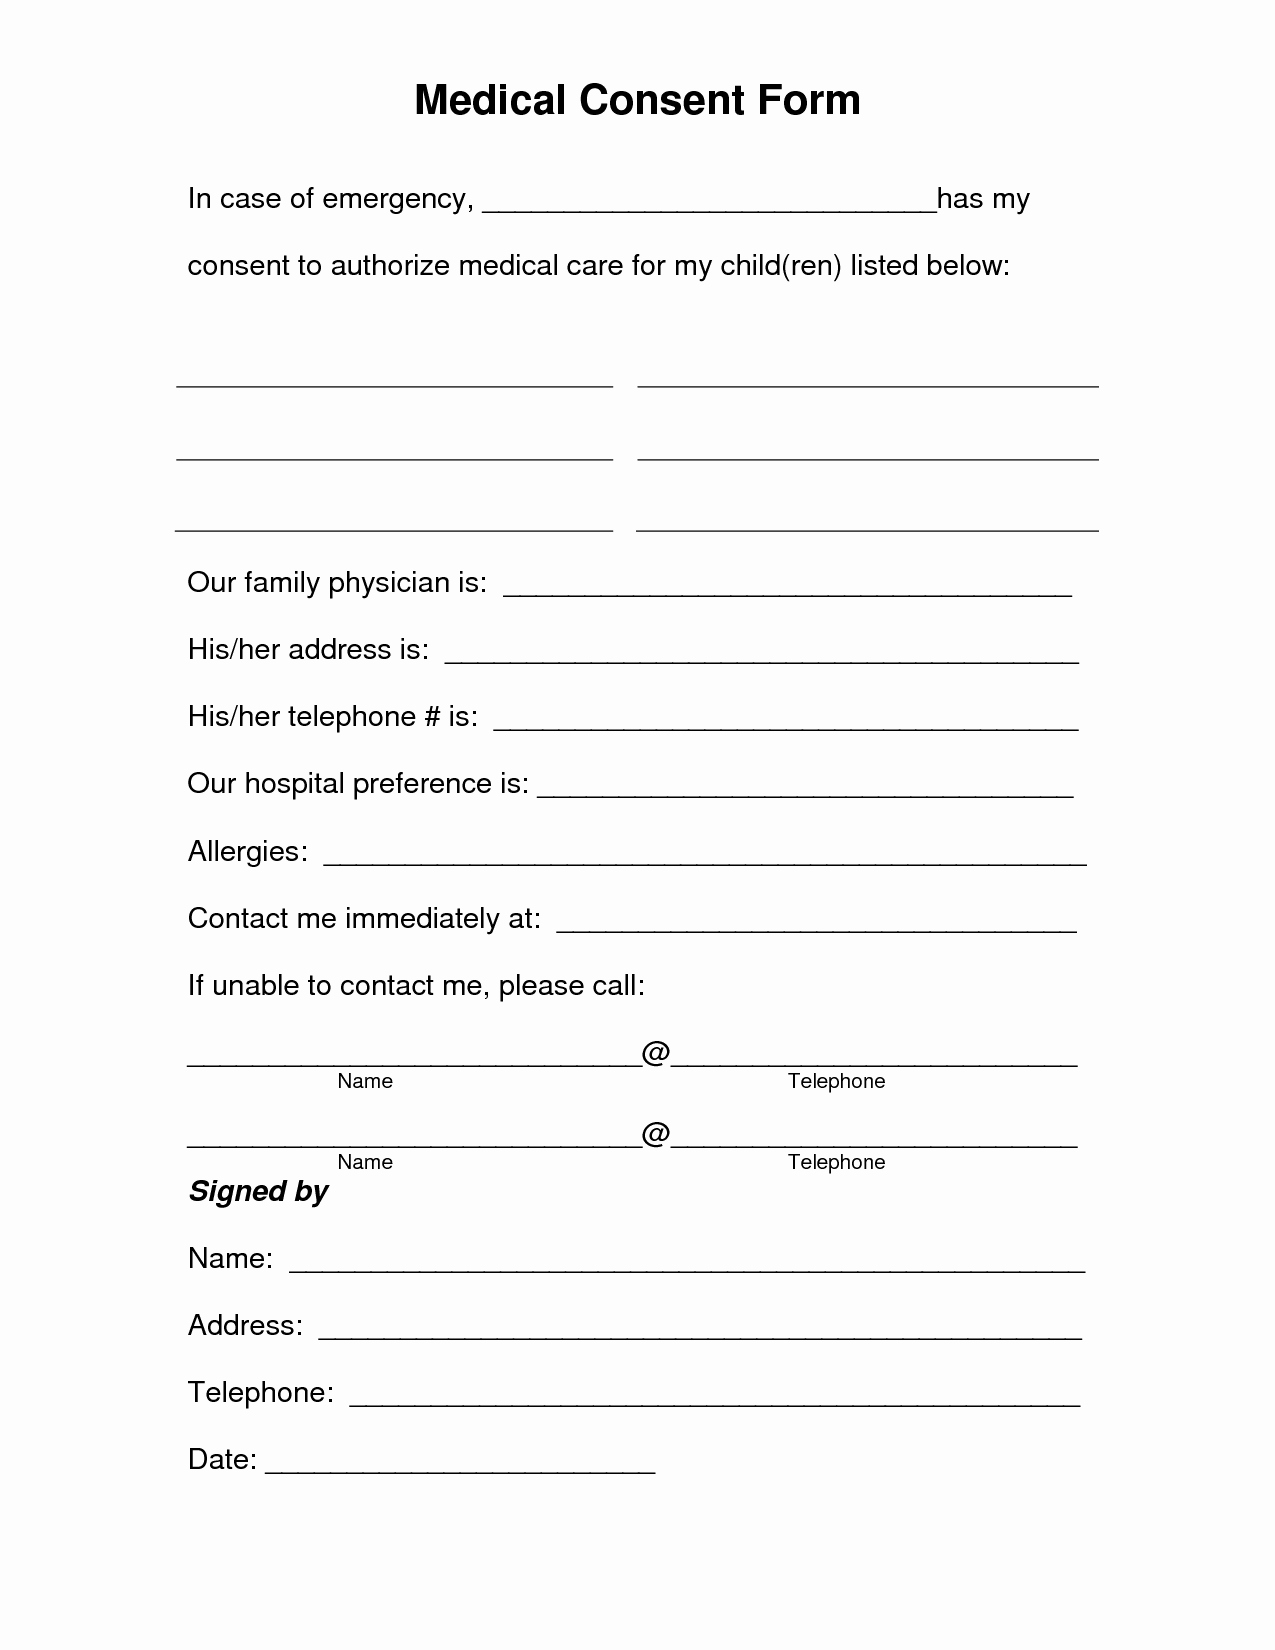 Medical Records form Template New Medical Record Release form Template